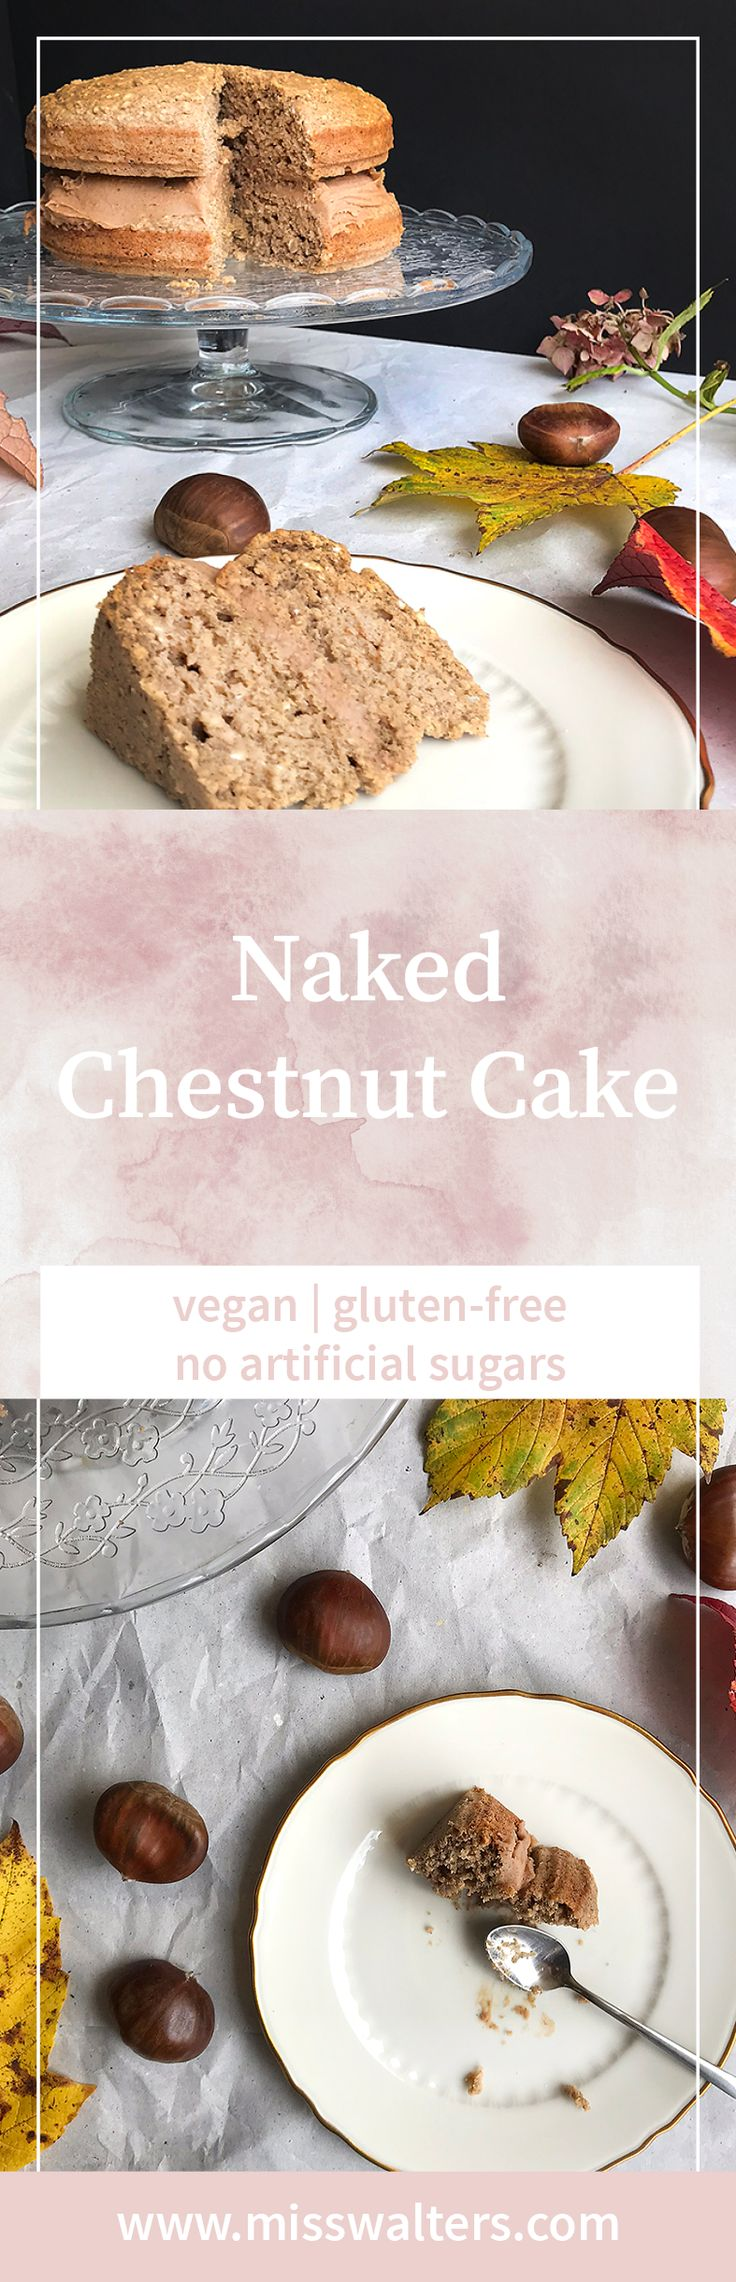 Ring in the golden days of autumn with this delicious naked chestnut cake.